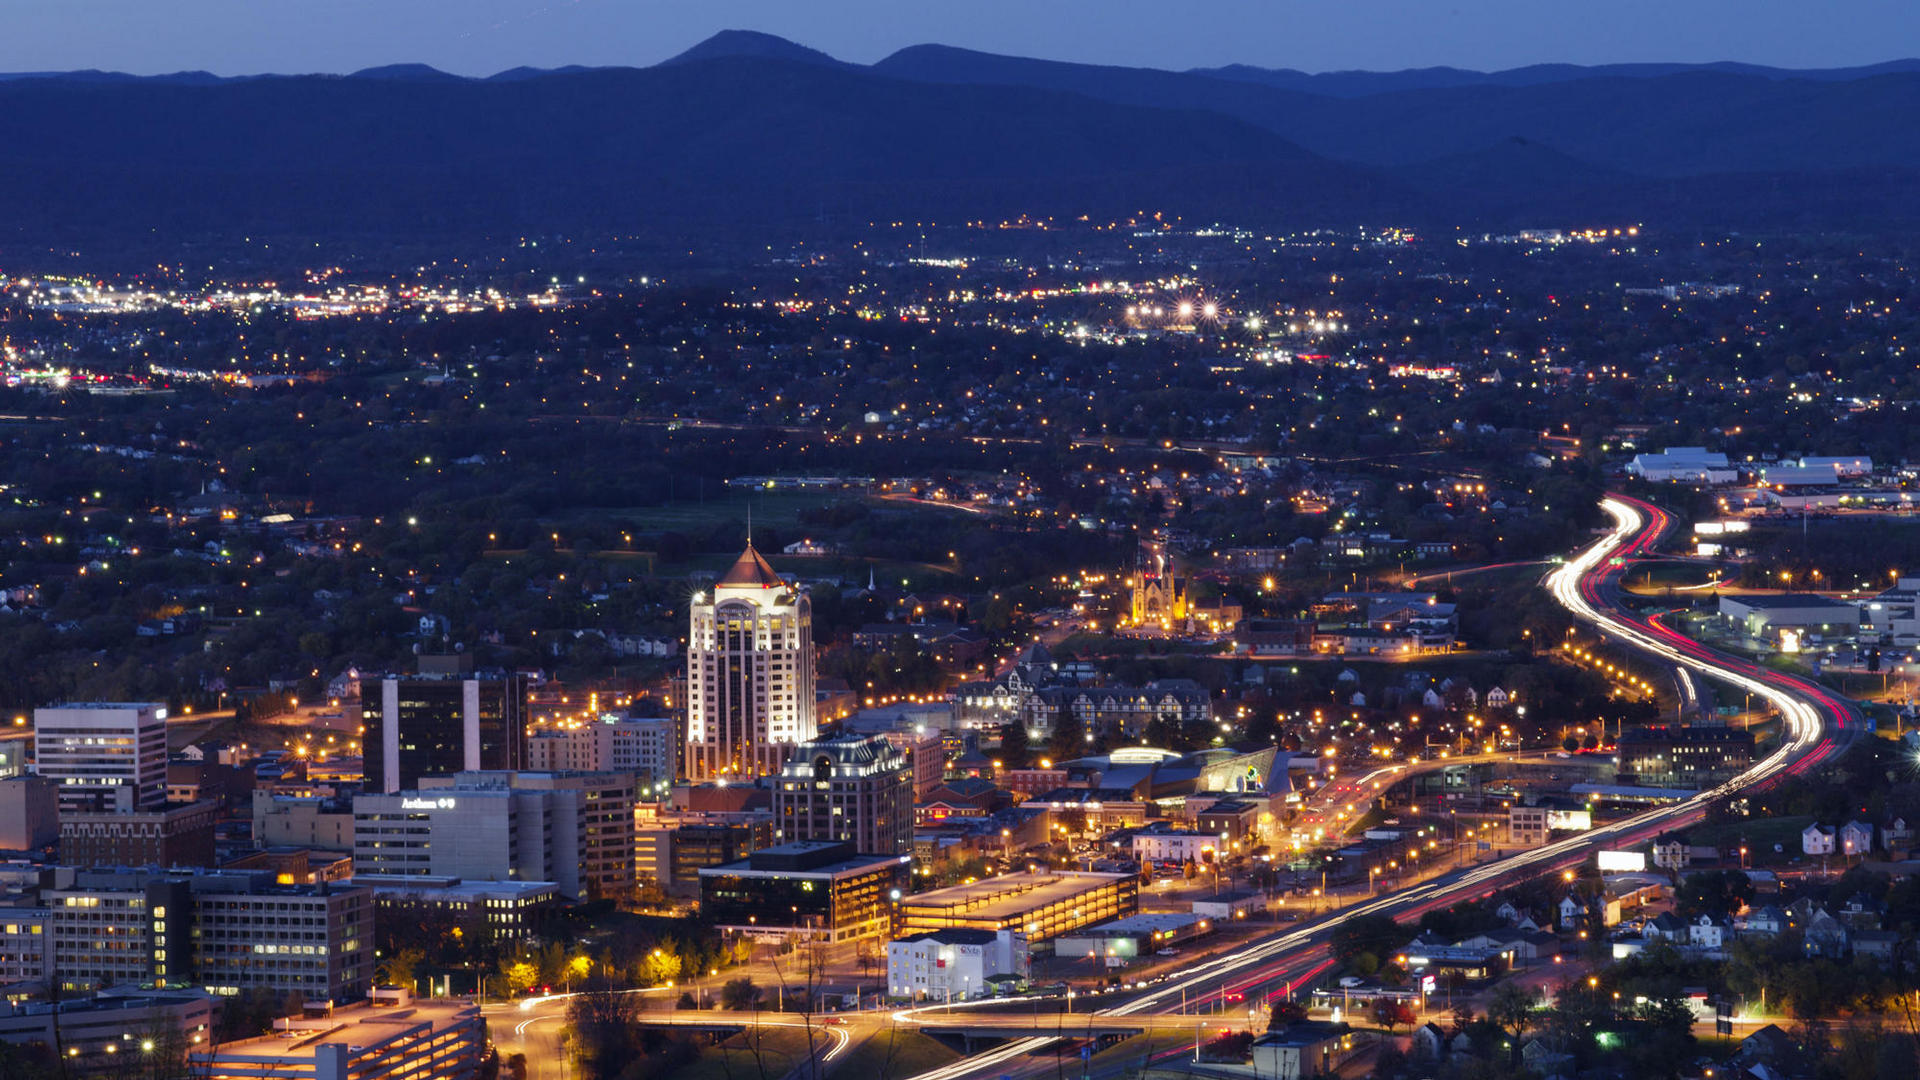 downtown roanoke at night time